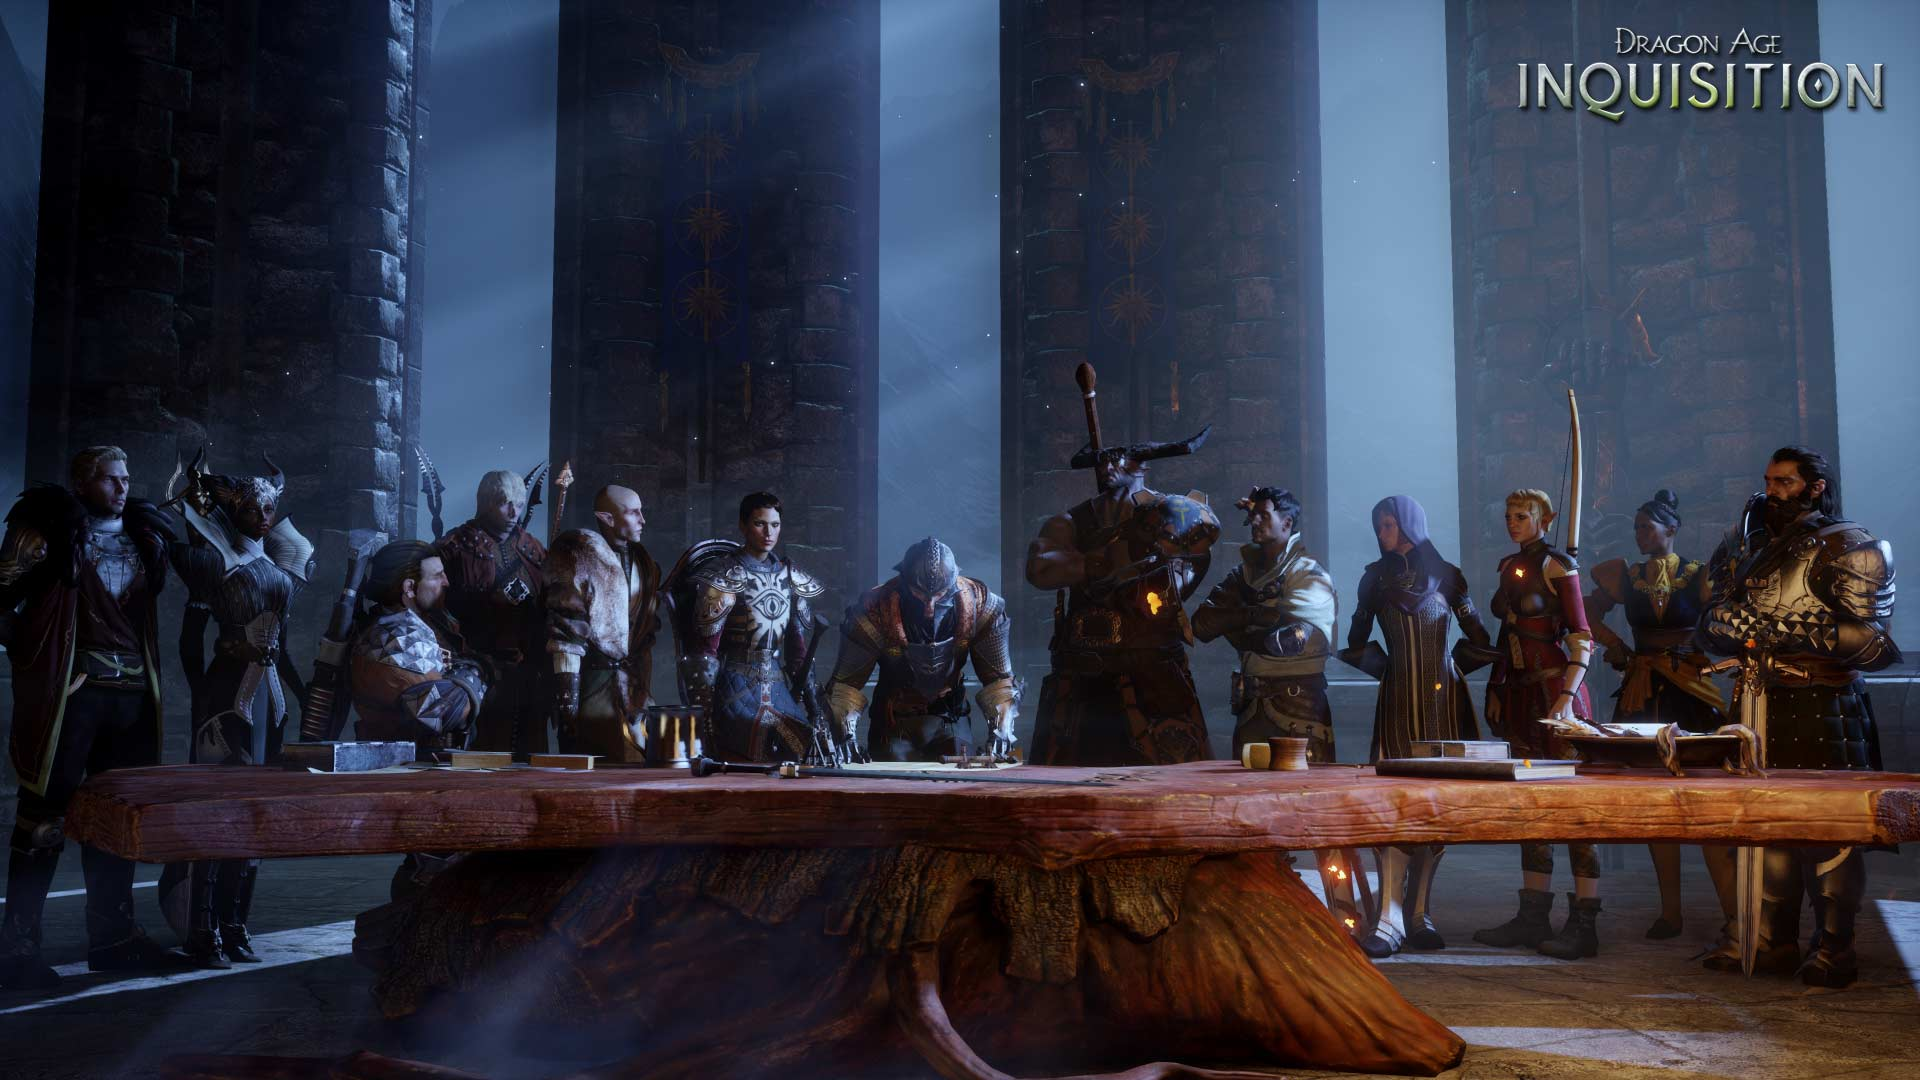 Dragon Age Inquisition Patch 2 Notes